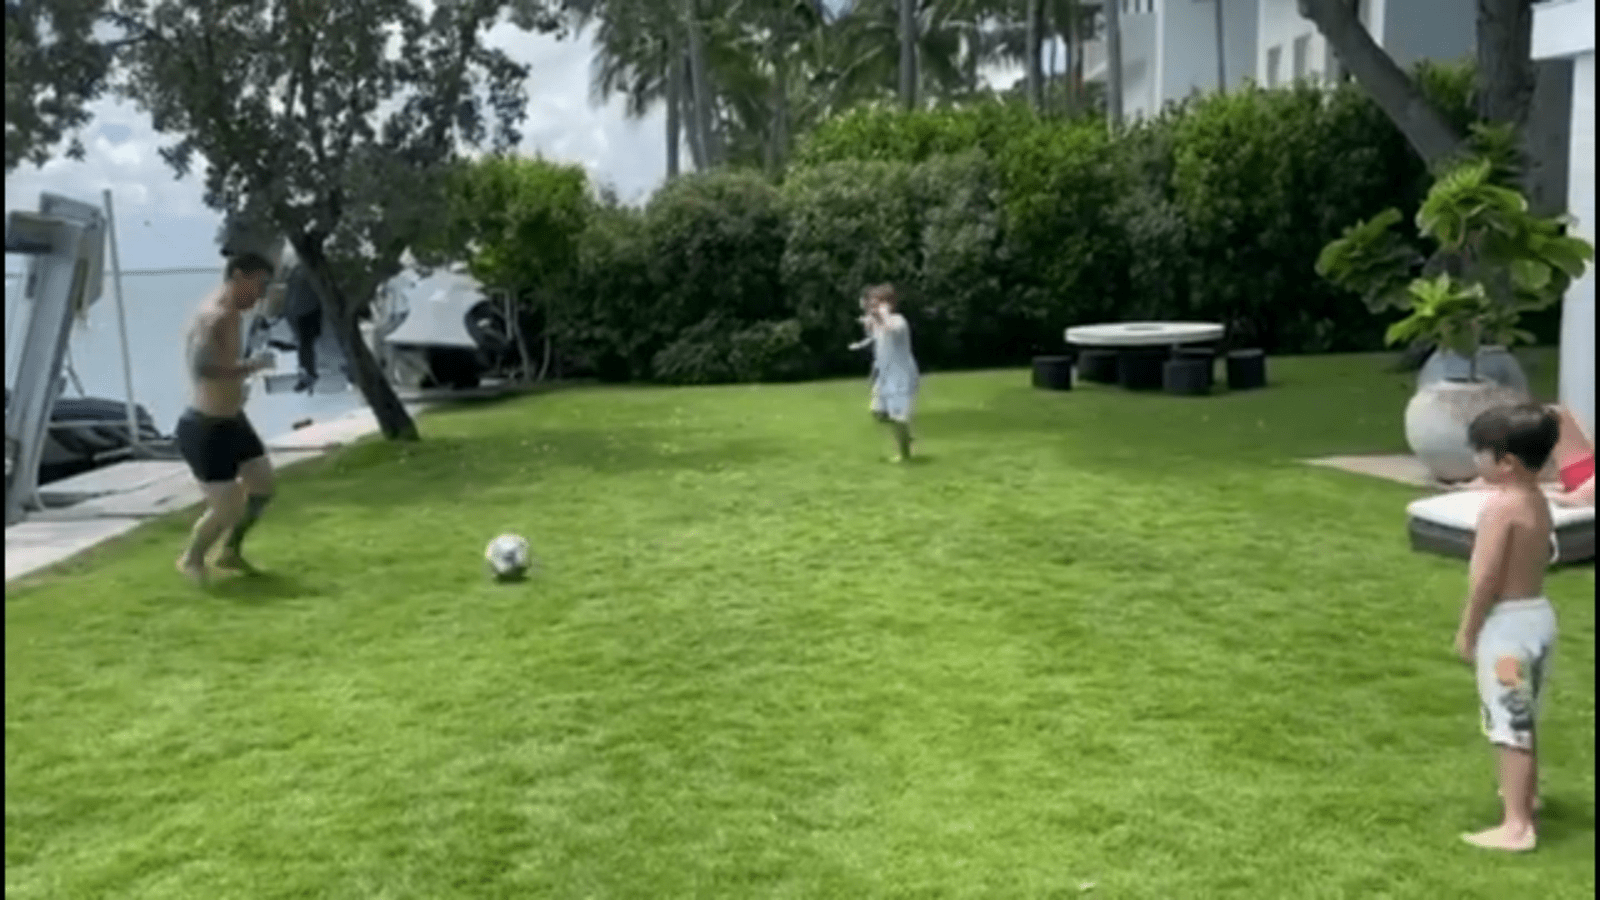 1627577512 Messi on vacation to the beach with music and football